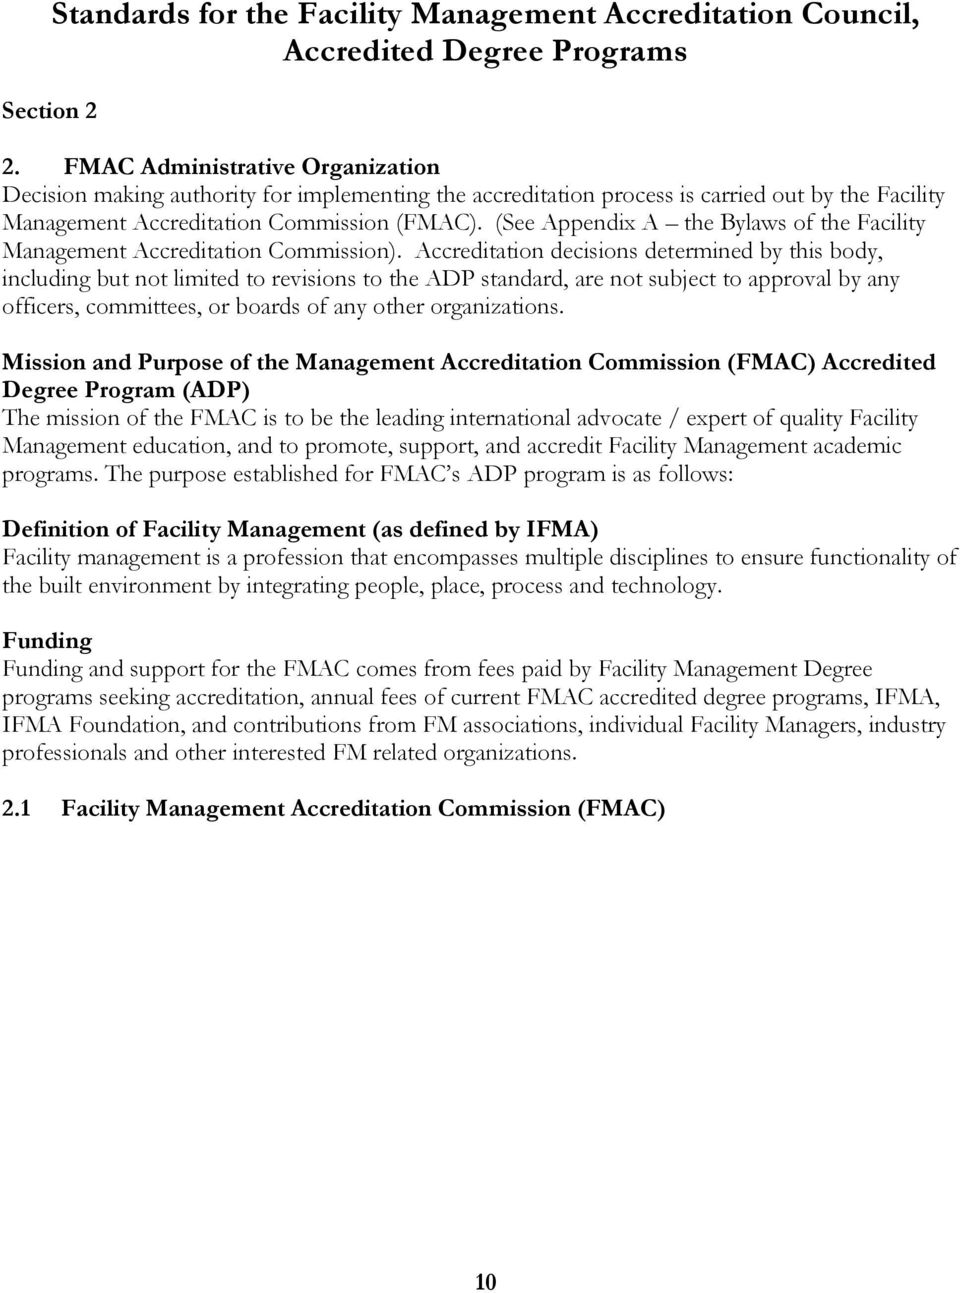 (See Appendix A the Bylaws of the Facility Management Accreditation Commission).